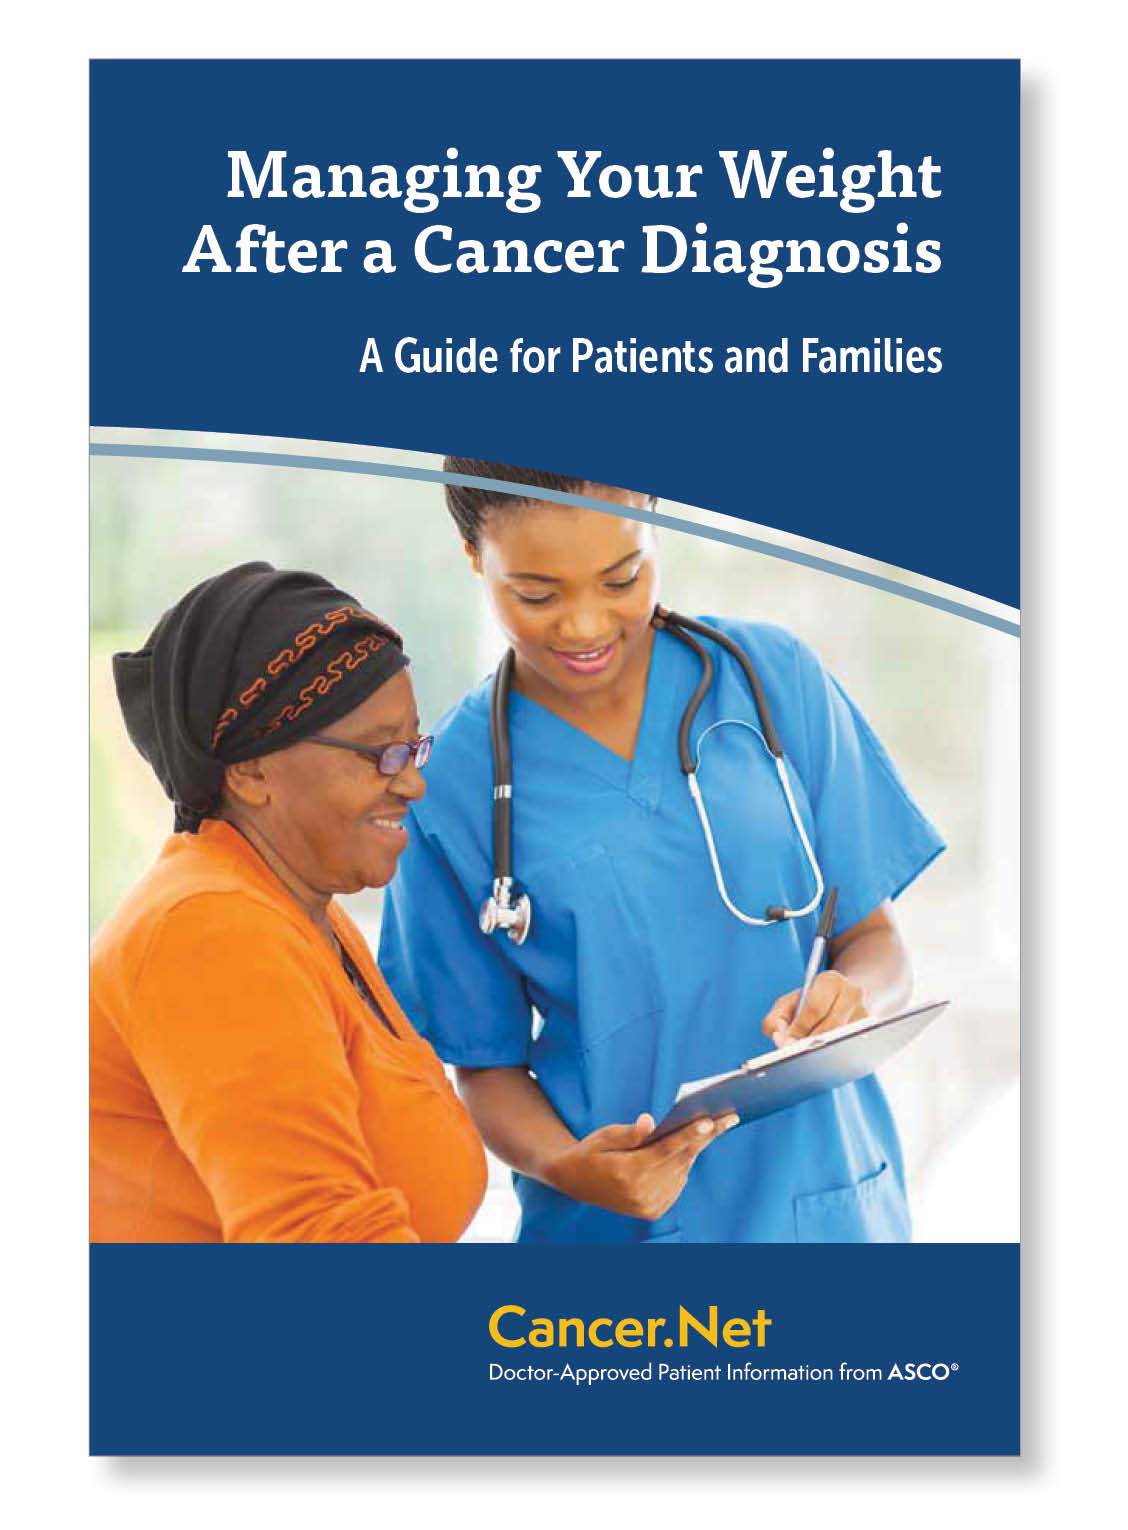 Managing Your Weight After A Cancer Diagnosis (pack of 50 booklets)